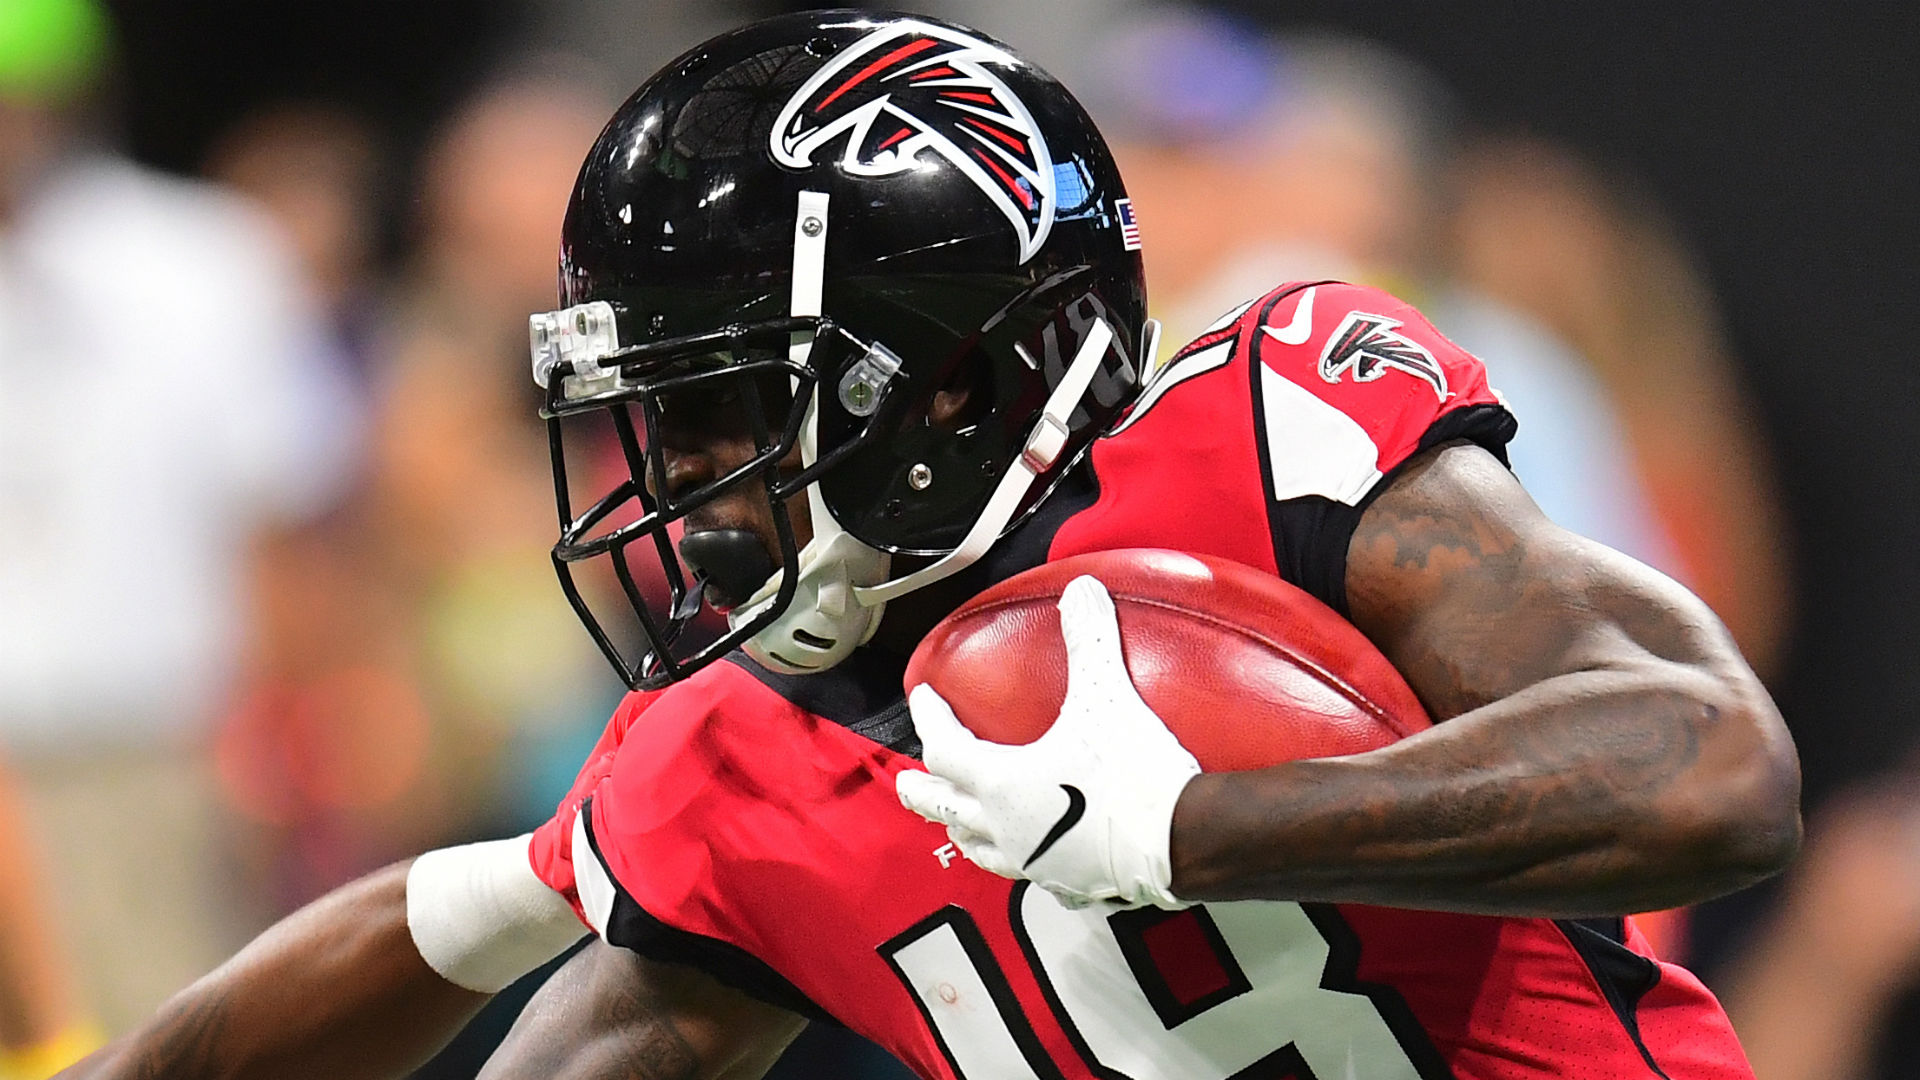 Waiver Wire Week 1 Wr Center Details About Ideal 61534 Circuit Breaker Finders Best Fantasy Football Pickups For 4 Sporting News Rh Sportingnews Com Top